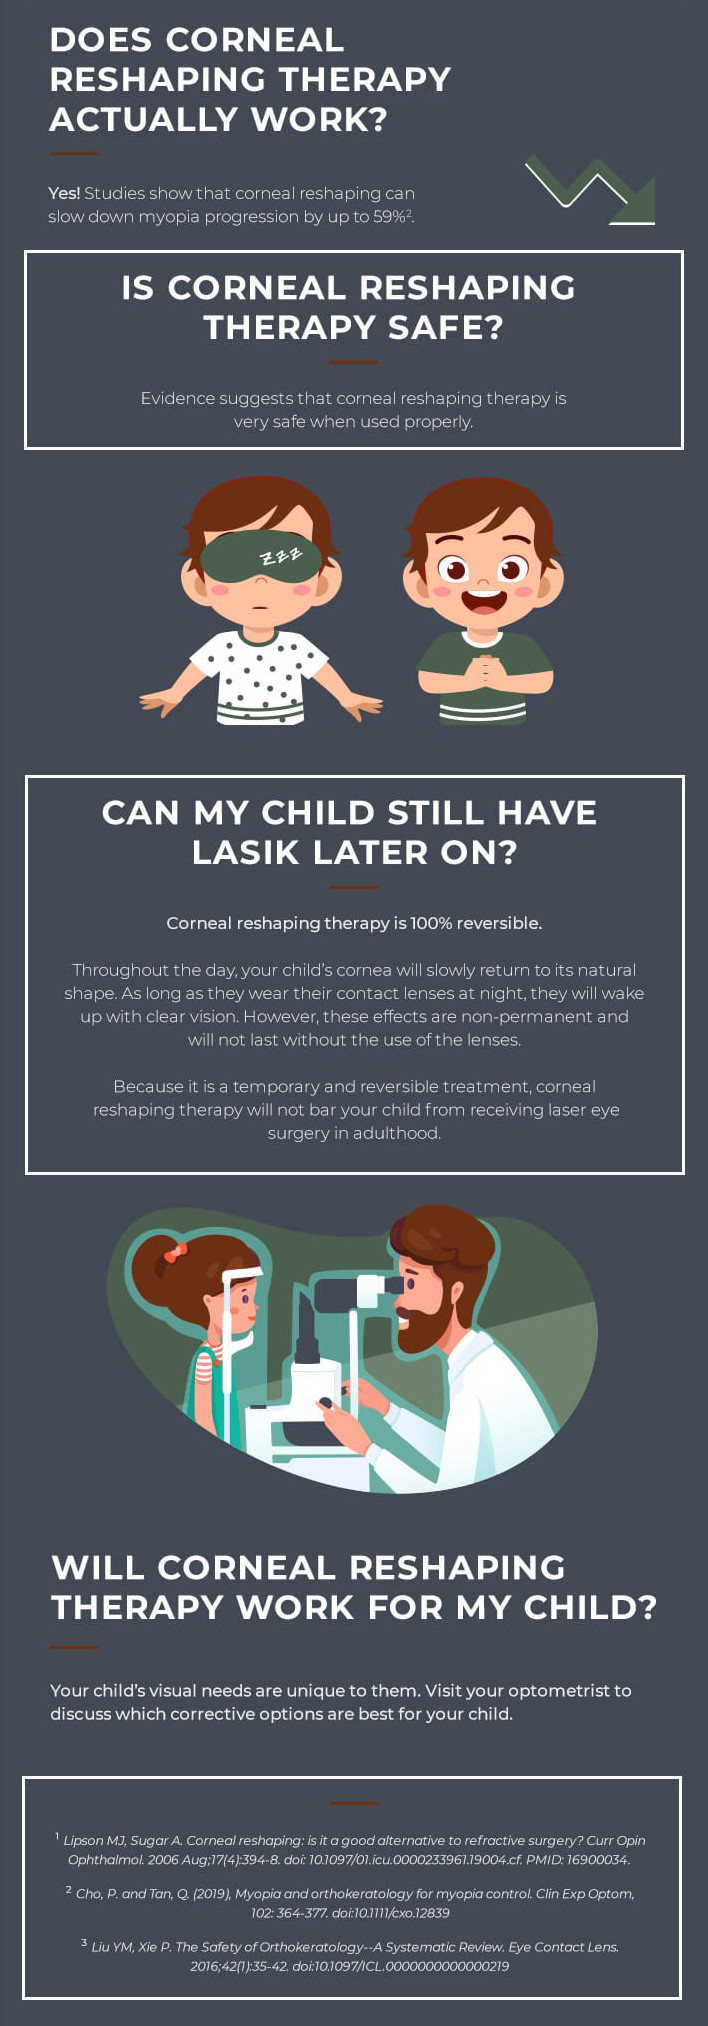 A long infographic answering questions about corneal reshaping therapy.